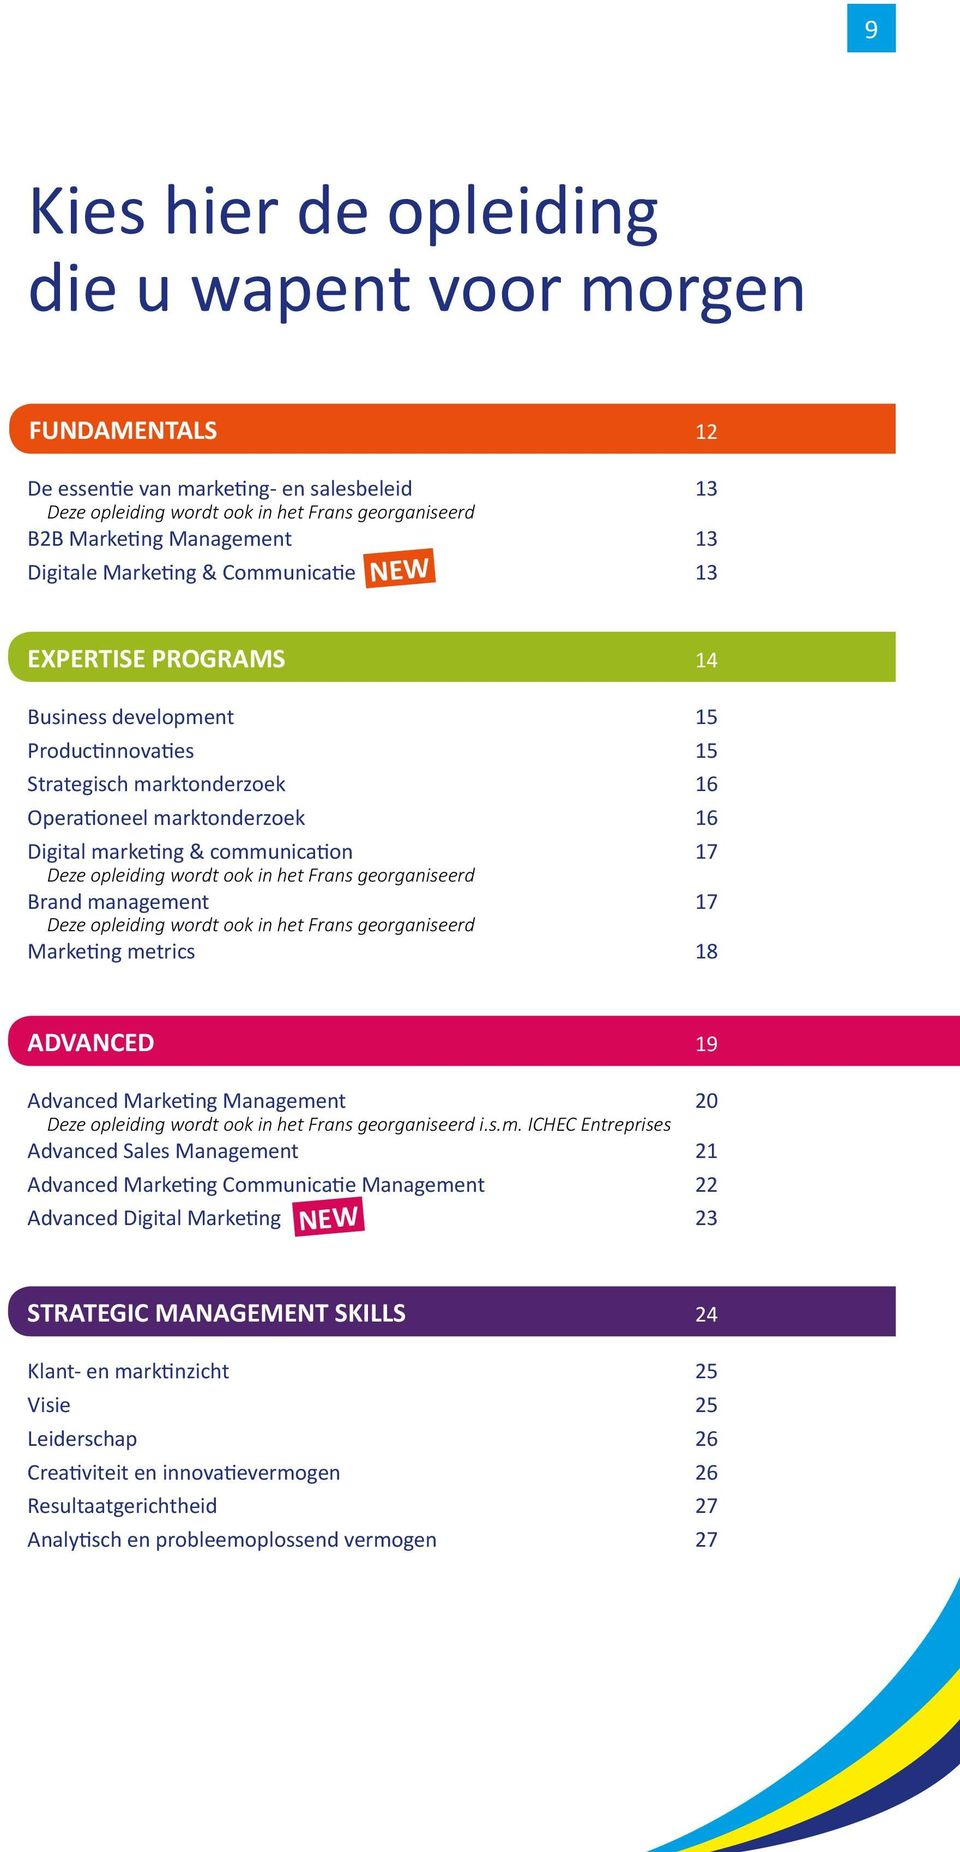 Dee opleiding wordt ook in het Frans georganiseerd Brand management 17 Dee opleiding wordt ook in het Frans georganiseerd Marketing metrics 18 ADVANCED 19 Advanced Marketing Management 20 Dee